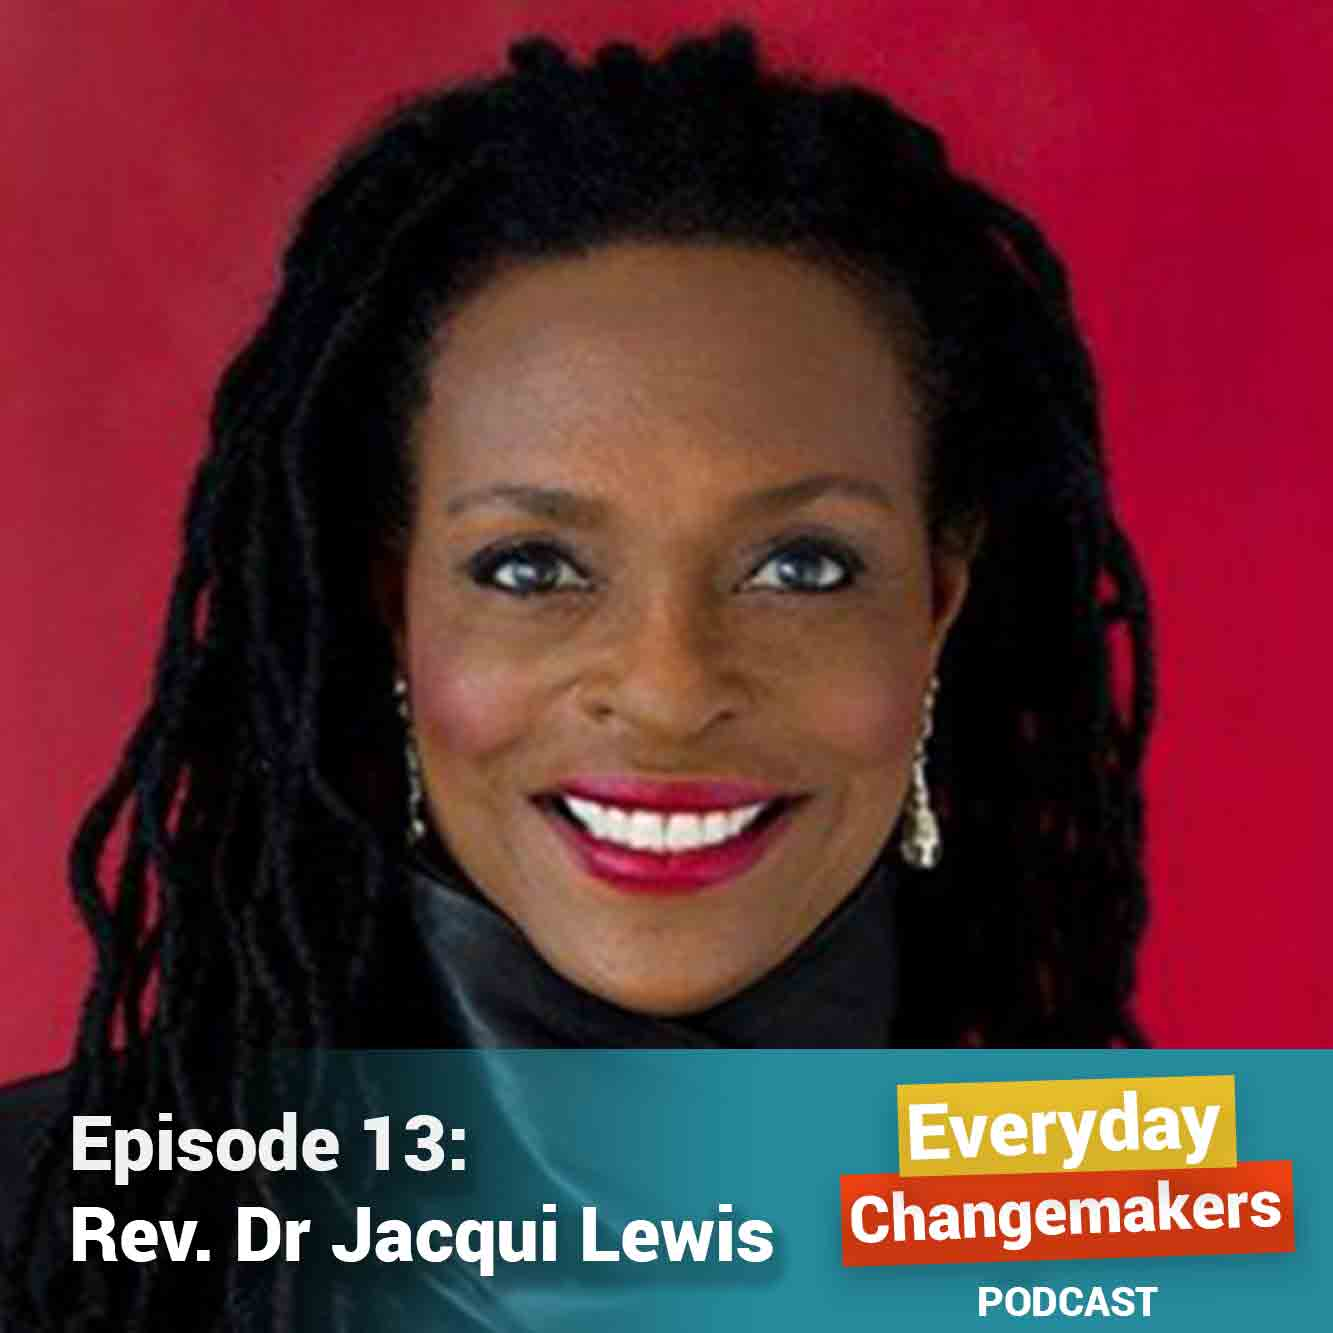 On God's Love in Action - Rev. Dr. Jacqui Lewis is a nationally recognized faith leader who serves as the Senior Minister of Middle Collegiate Church in NYC, the Executive Director of The Middle Project, and the host of the television show, Just Faith.Jacqui developed a strong connection to God starting in childhood. But over time, she had to